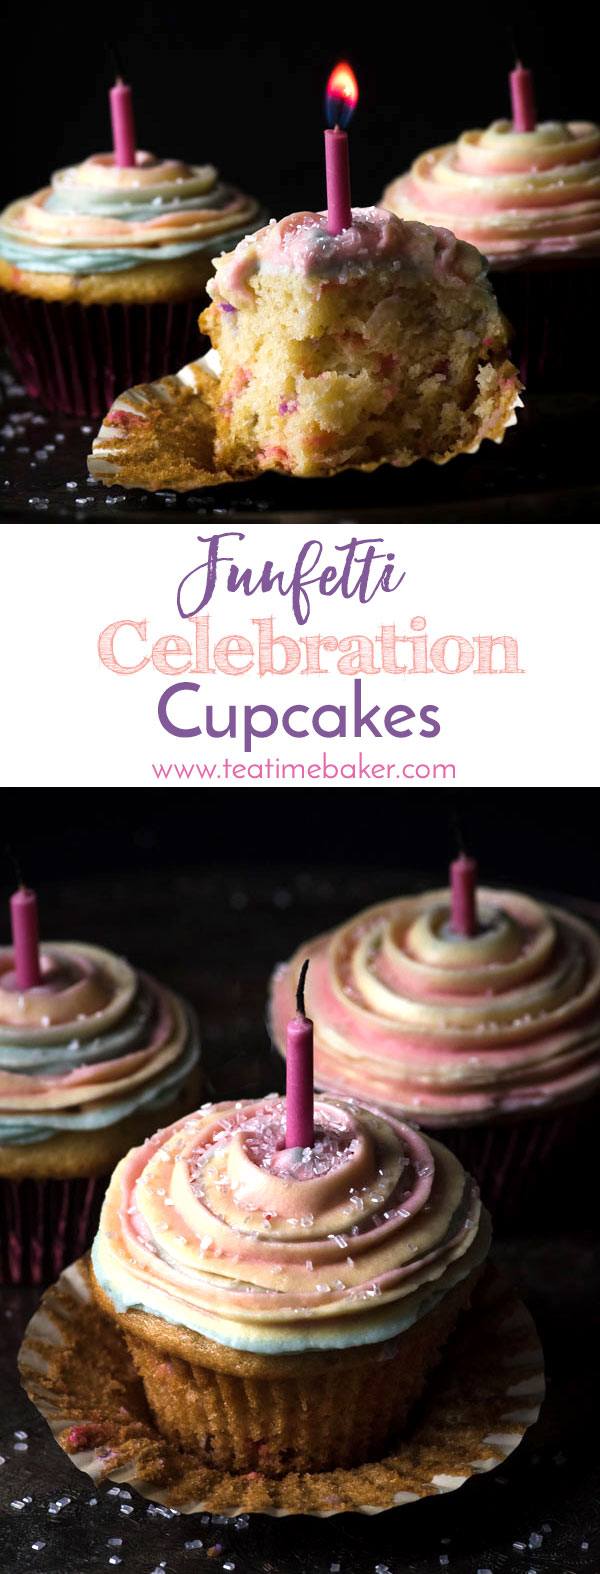 Funfetti Celebration Cupcakes are made from scratch in just one bowl! Customize the colors to any event. Soft and delicious vanilla cake topped with a swirl of colorful icing is sure to be a favorite. | Funfetti Cupcakes from scratch | Homemade Funfetti Vanilla Cupcakes | Multi-colored icing | The Teatime Baker | #funfetticelebrationcupcakes #homemadevanillafunfetticupcakes